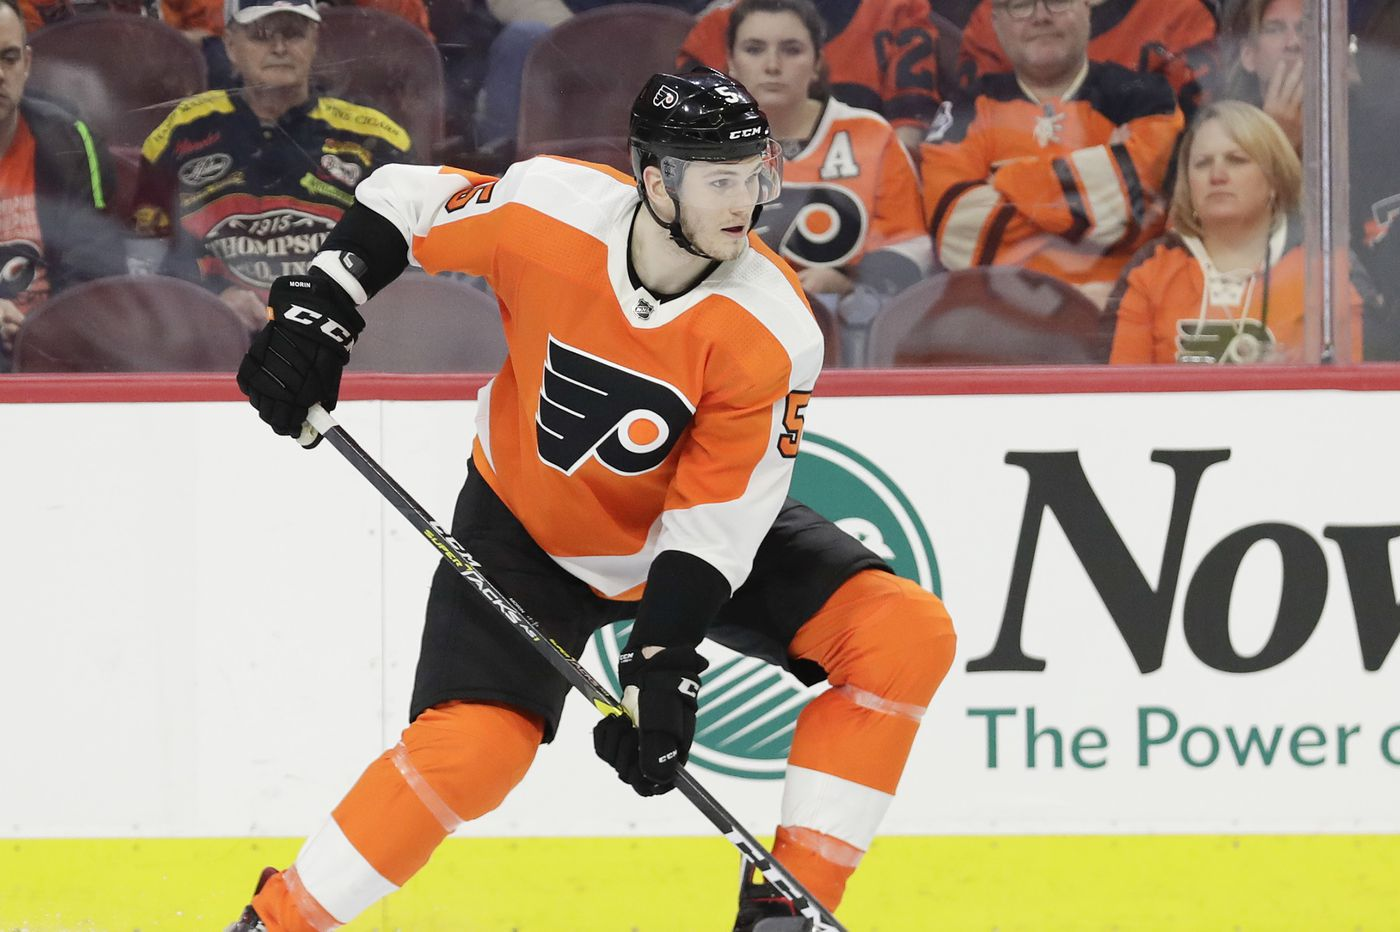 Flyers defenseman Samuel Morin hungry to show he belongs in the NHL